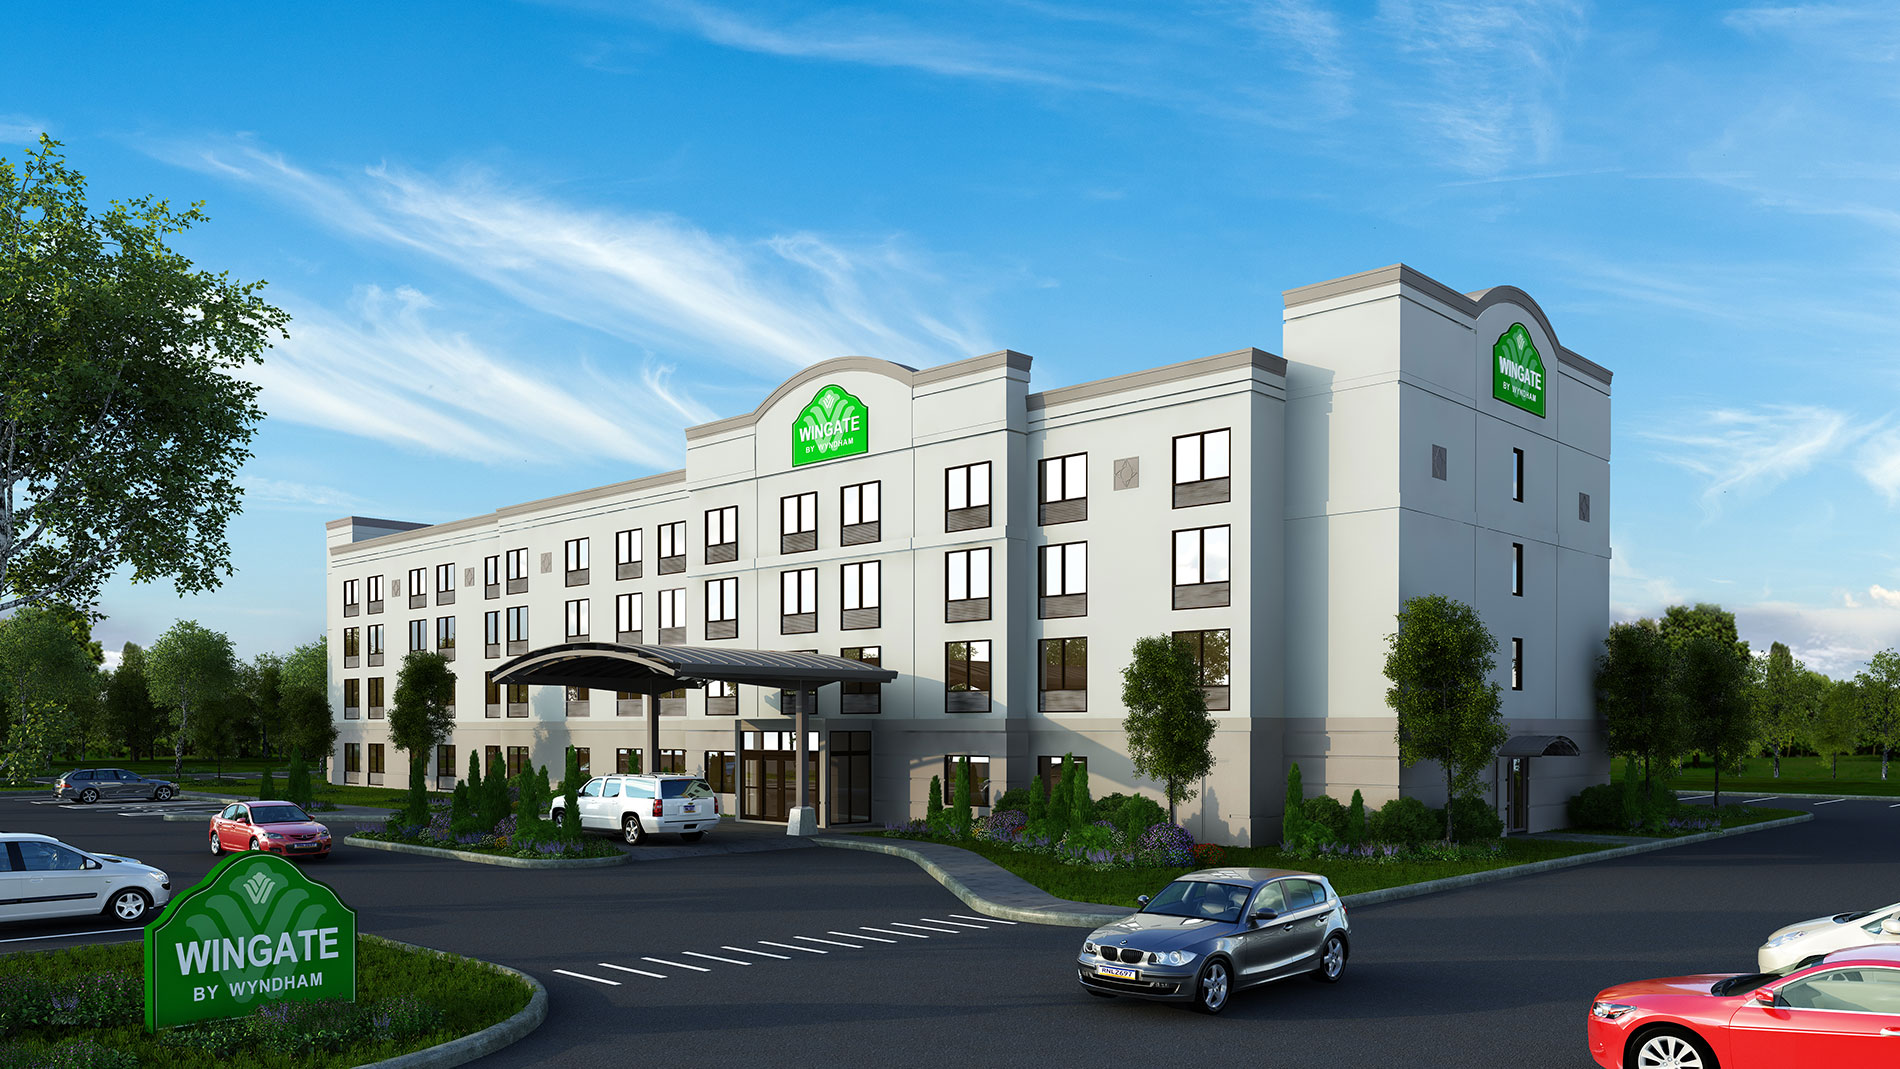 Wyndham Partners With PHI Hotel Group To Open 40 Canada